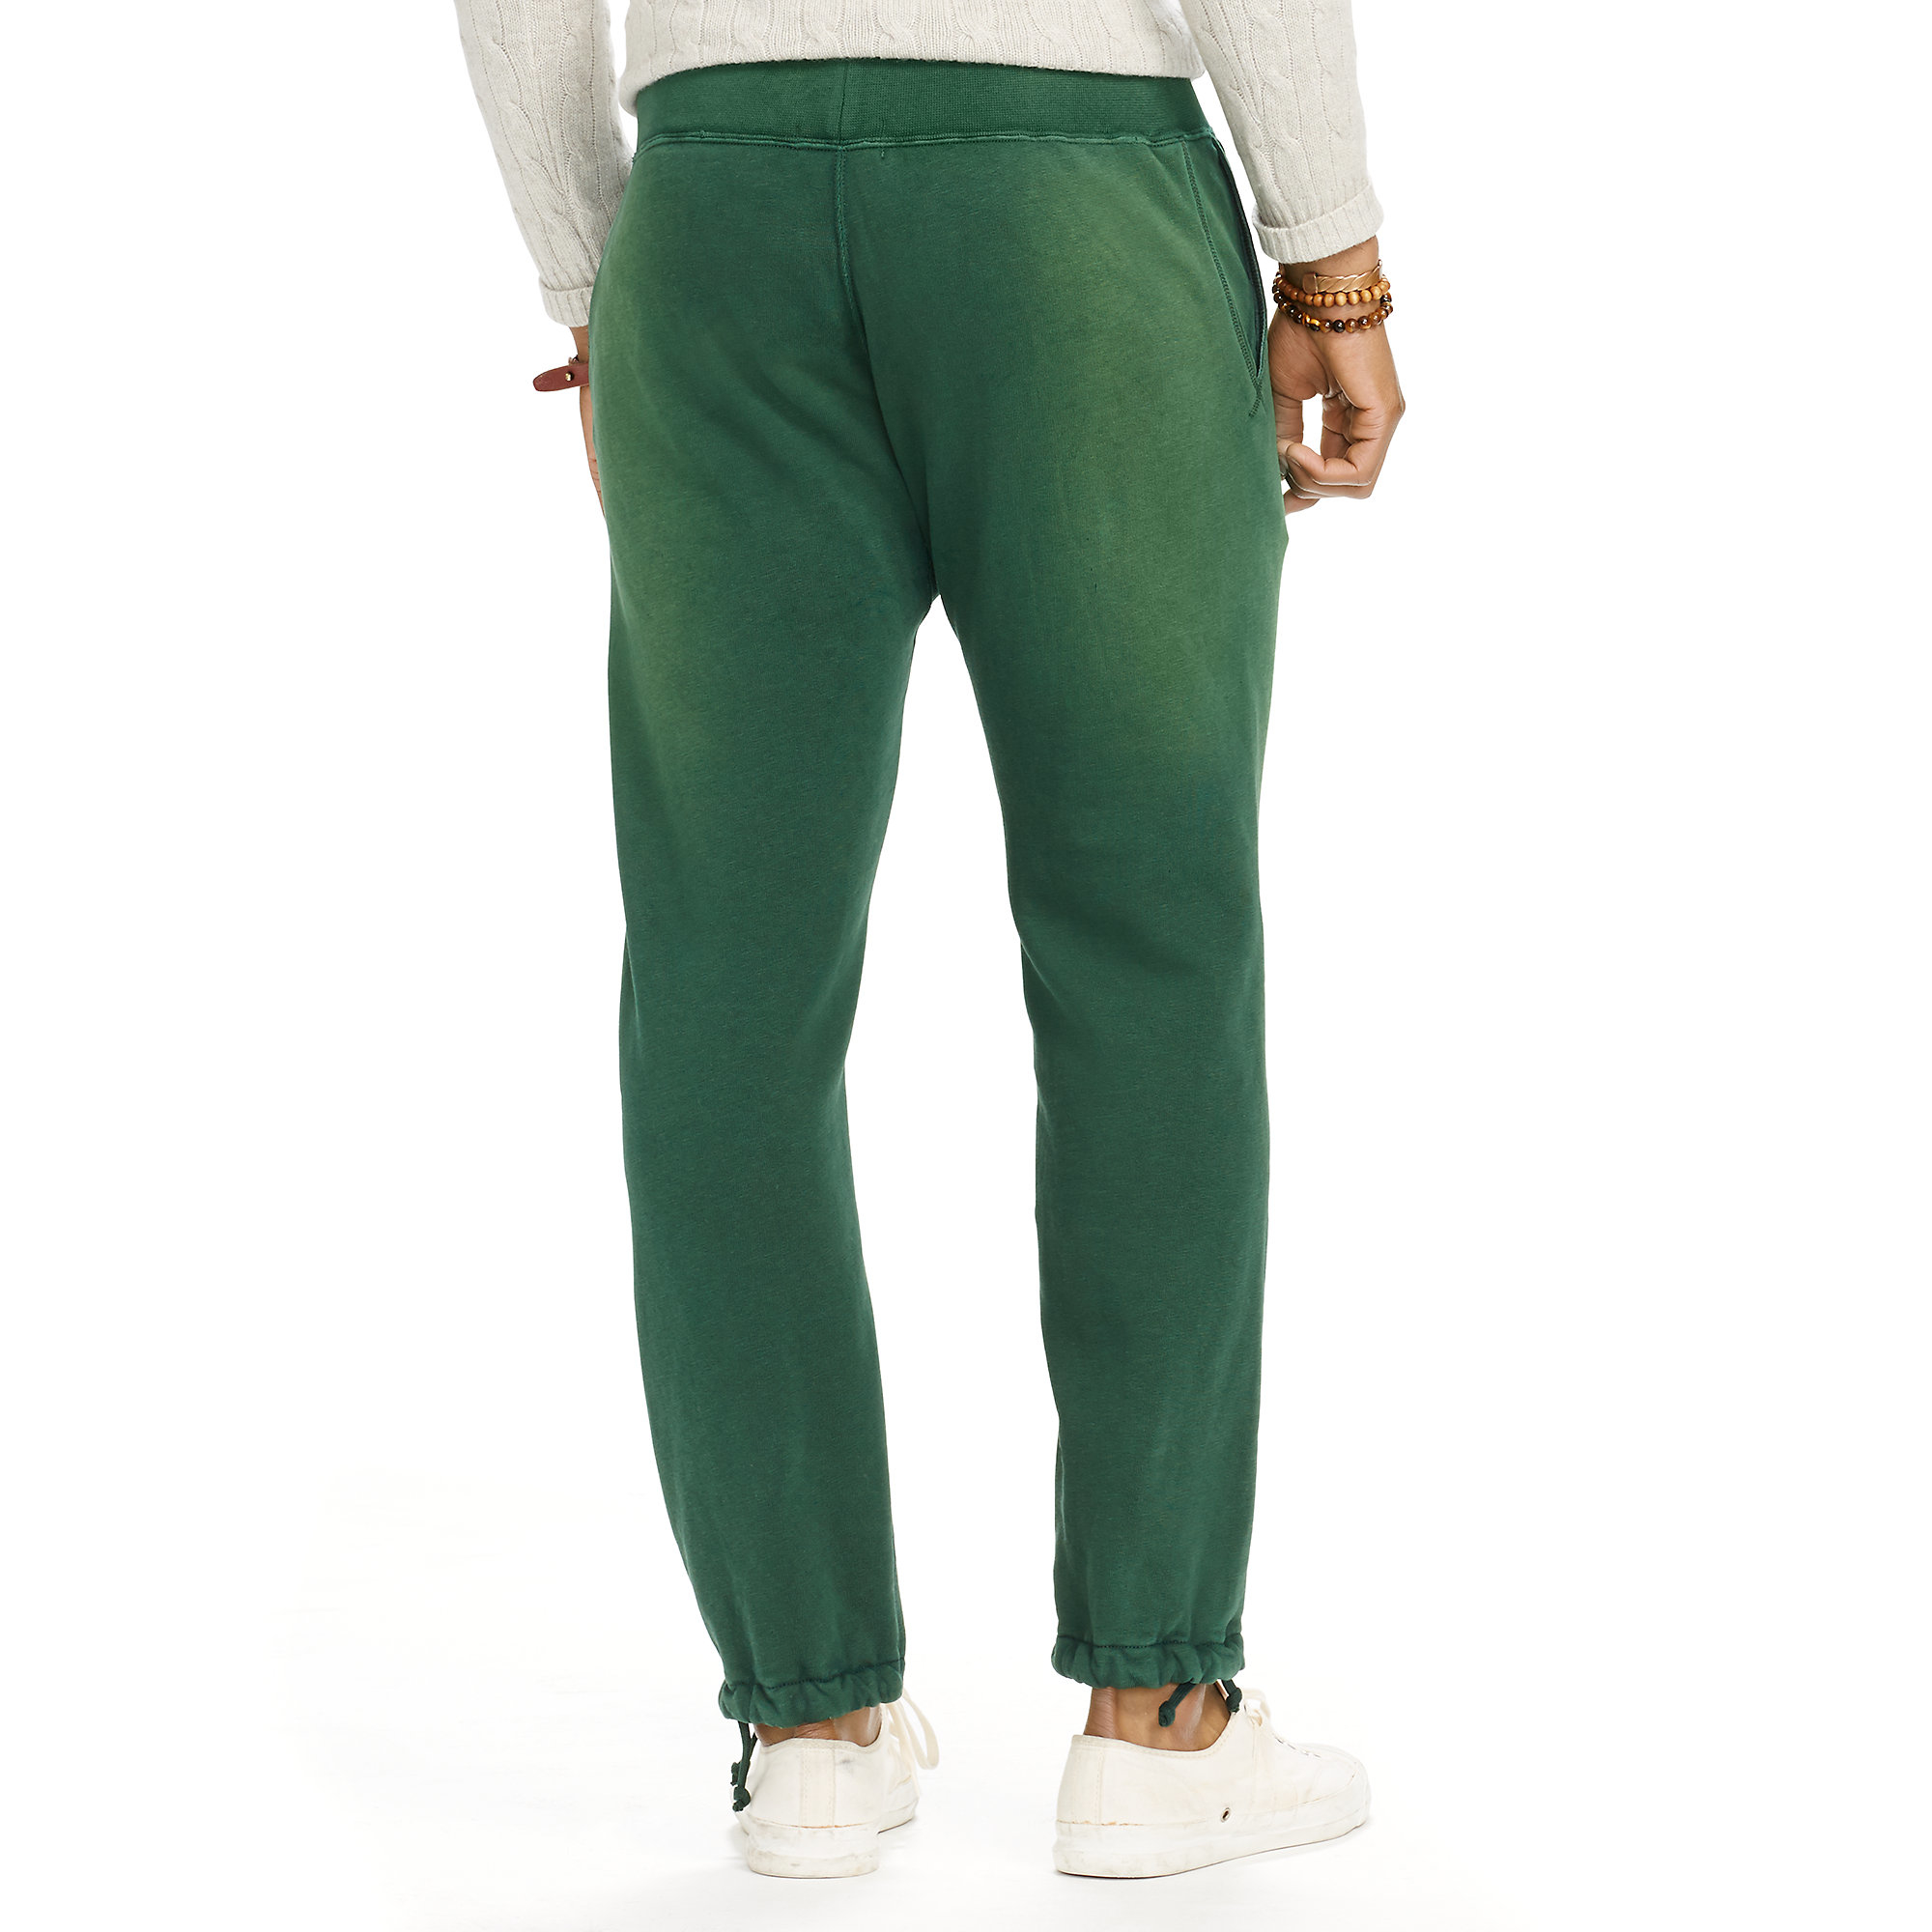 781ce5b2b29 Lyst - Polo Ralph Lauren Fleece Athletic Pant in Green for Men